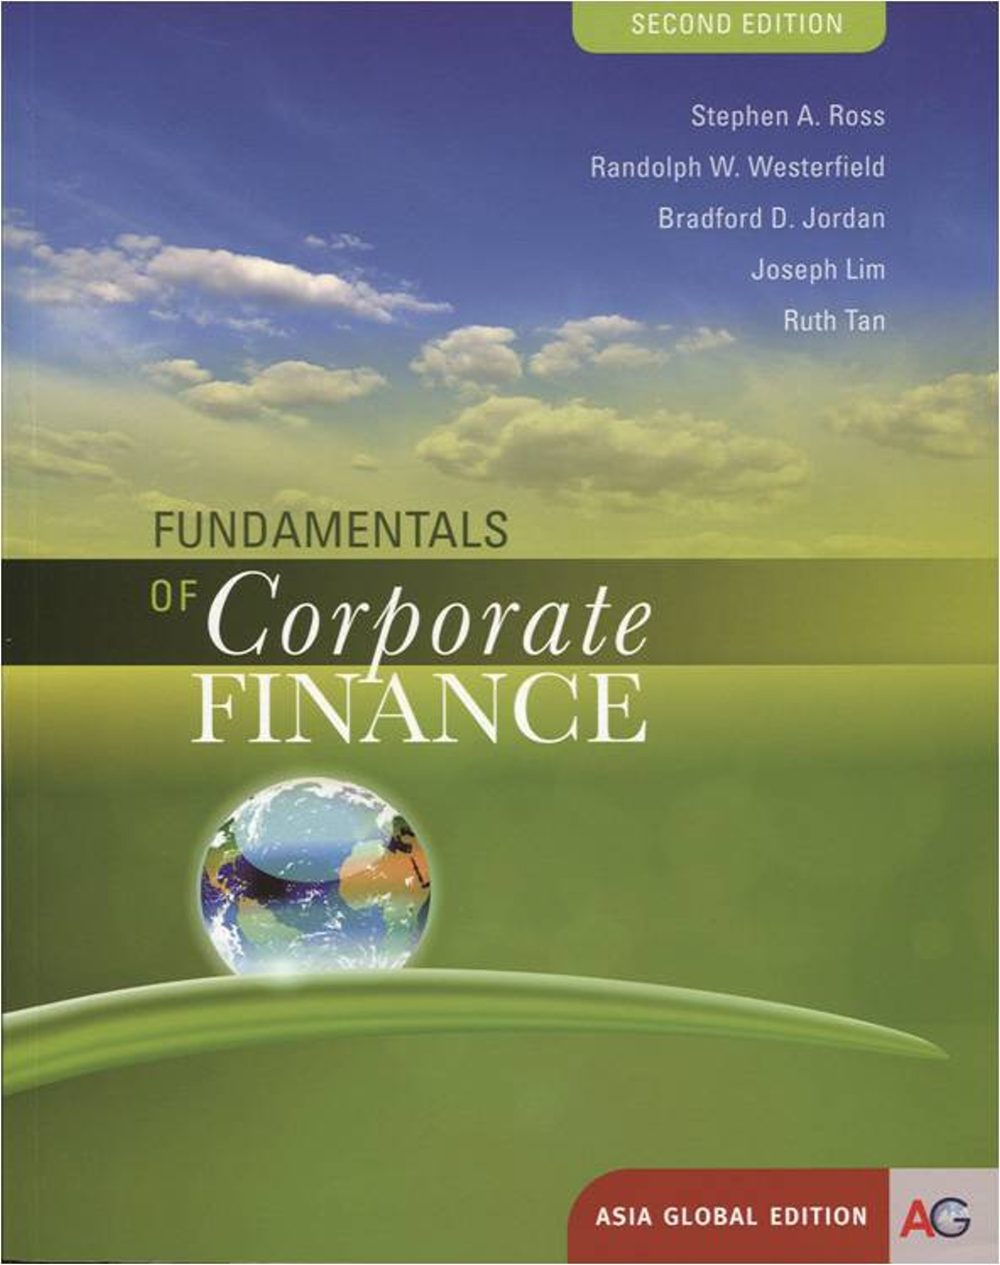 ross fundamentals of corporate finance solutions Fundamentals of corporate finance by ross, westerfield, and jordan, 10 th edition chapter 2 2 the income statement for the company is: income statement sales $734,000 costs 315,000 depreciation 48,000 ebit $371,000 interest 35,000 ebt $336,000 taxes (35%) 117,600 net income $218,400 3.